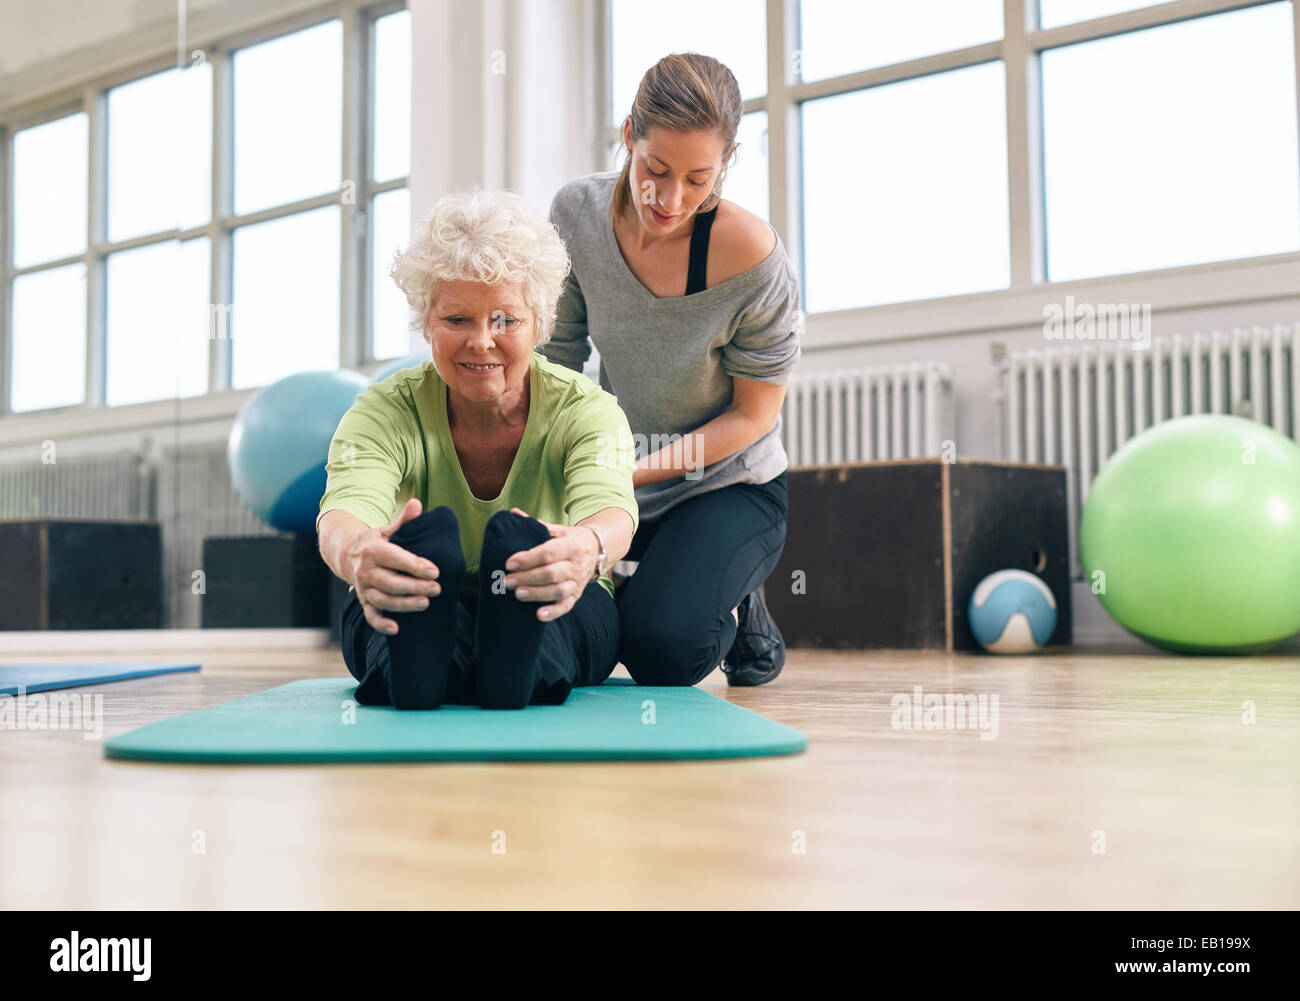 Elderly woman being helped by her instructor in the gym for exercising. Senior woman sitting on fitness mat bending - Stock Image